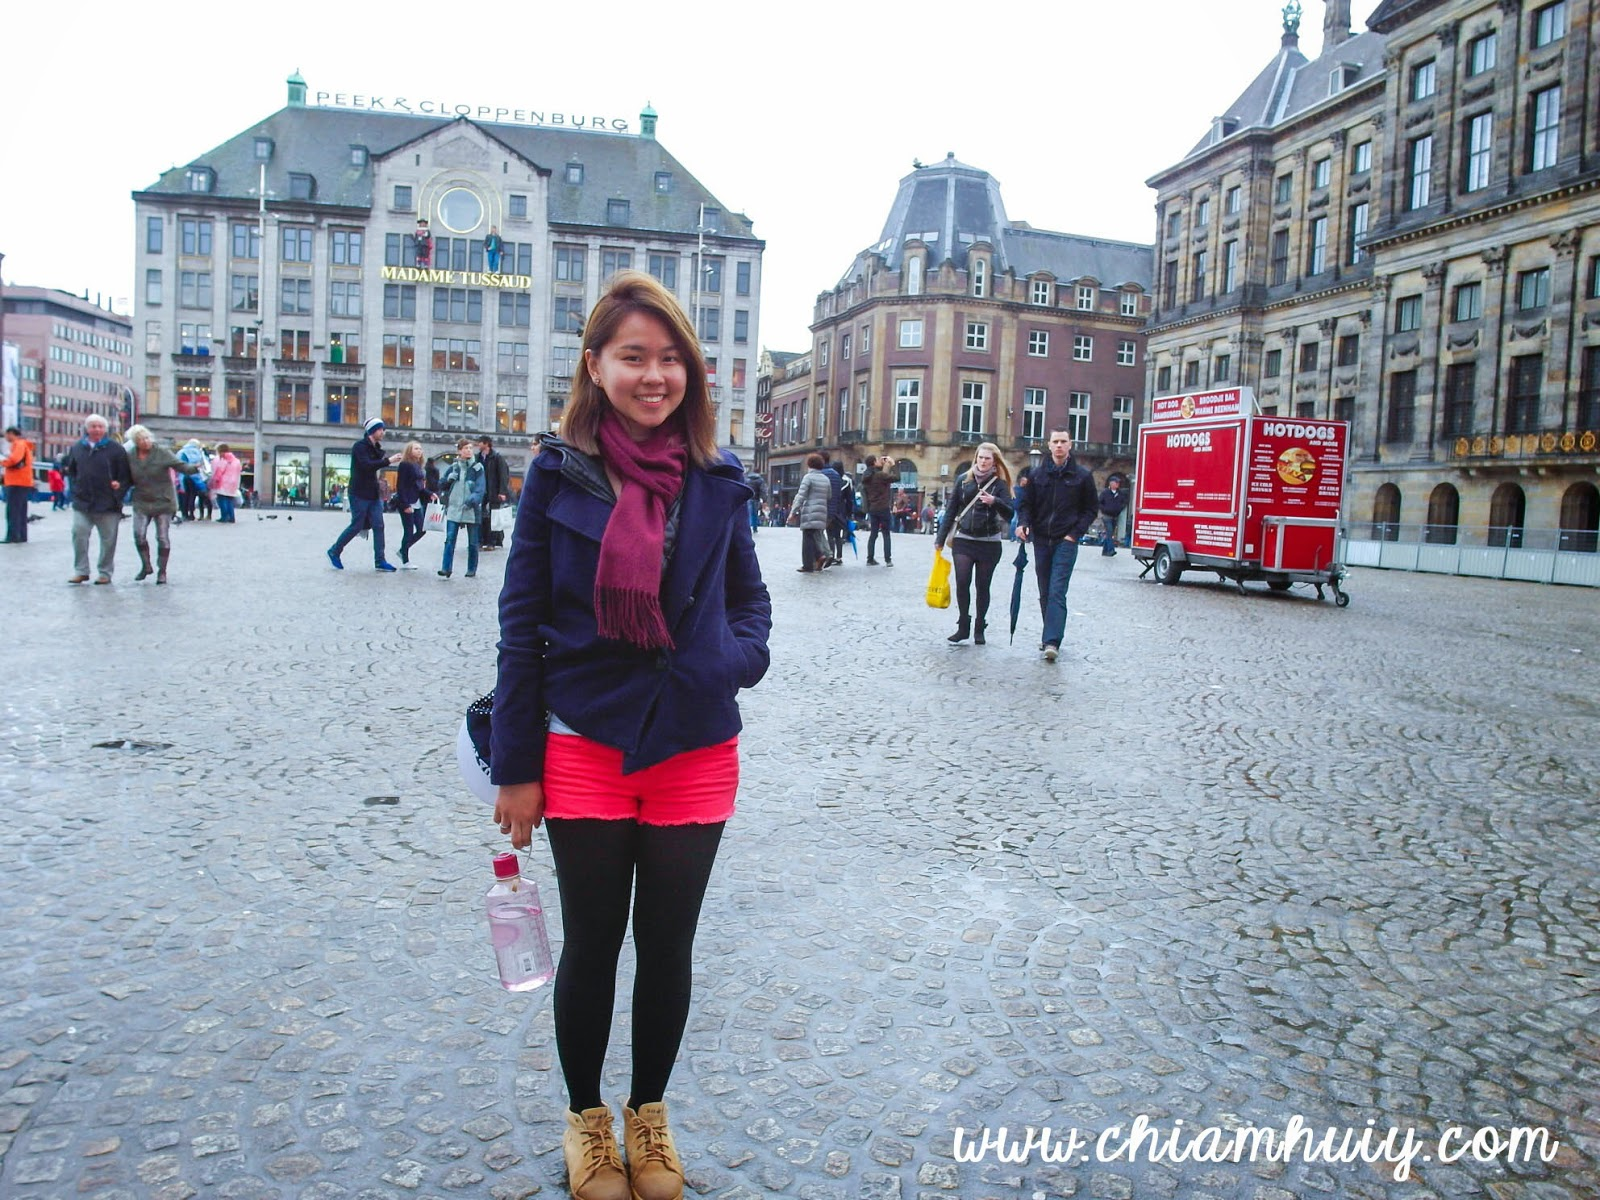 Amsterdam Naar Singapore Amsterdam Travel Guide Day 1 Celine Chiam Singapore